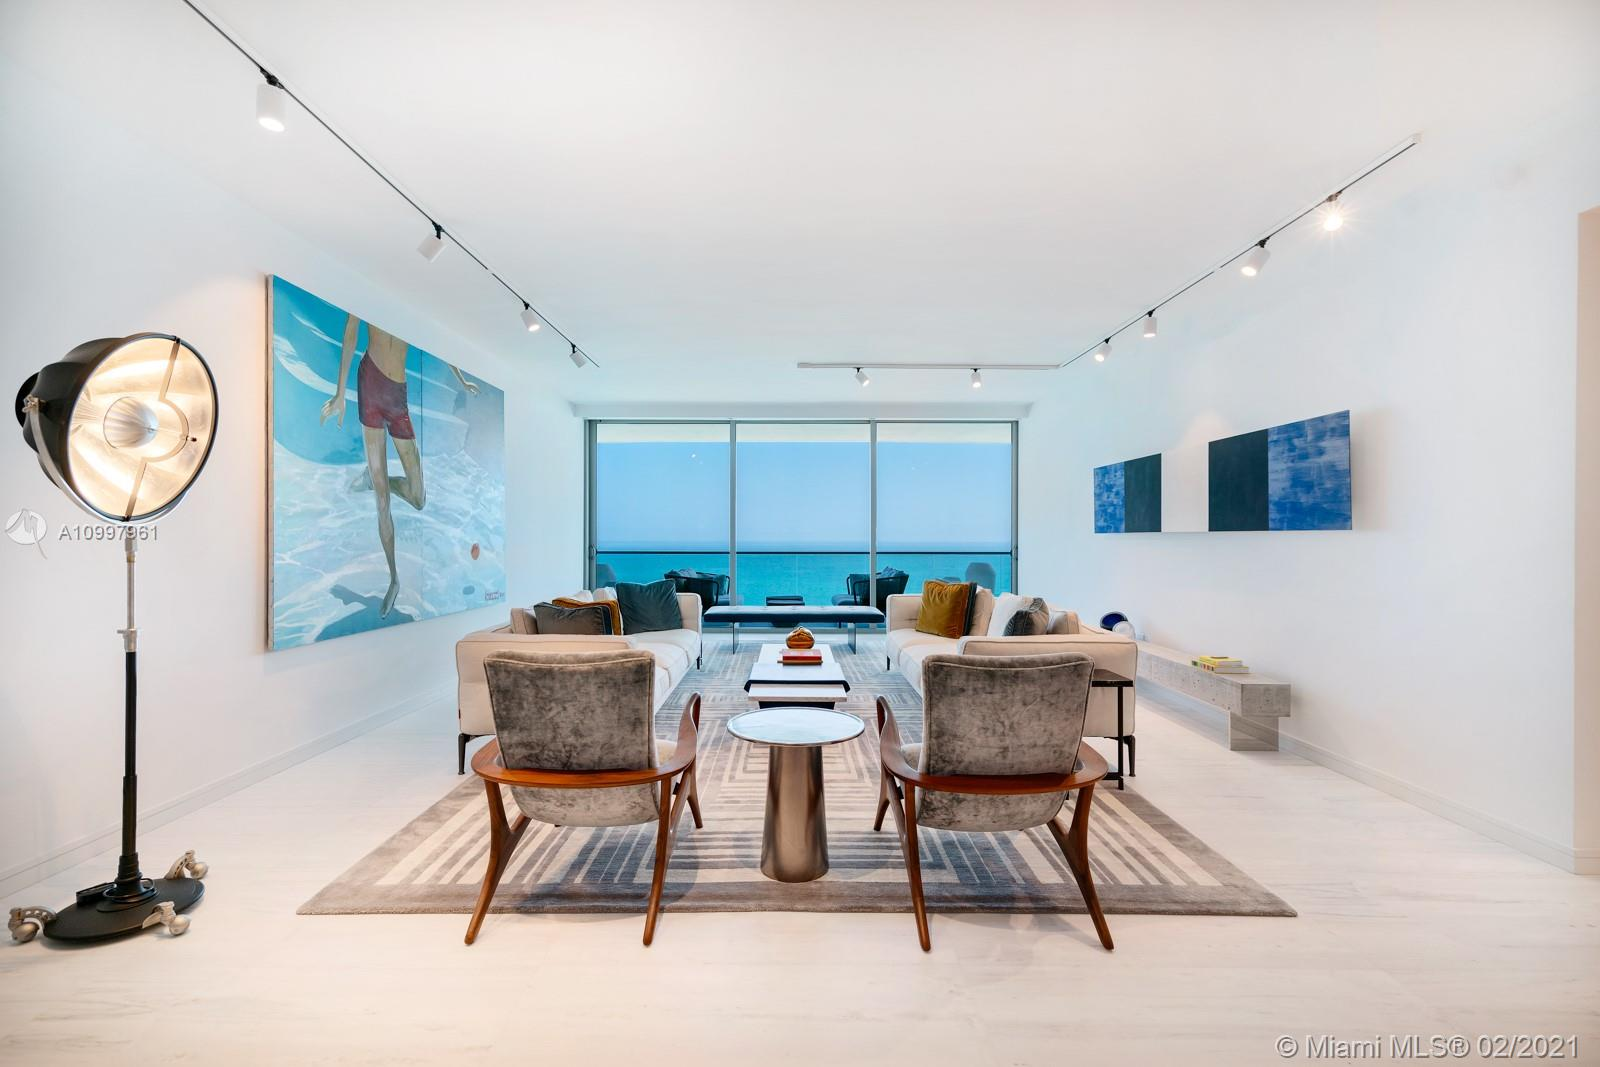 10201 Collins Ave, Unit #1906 Luxury Real Estate